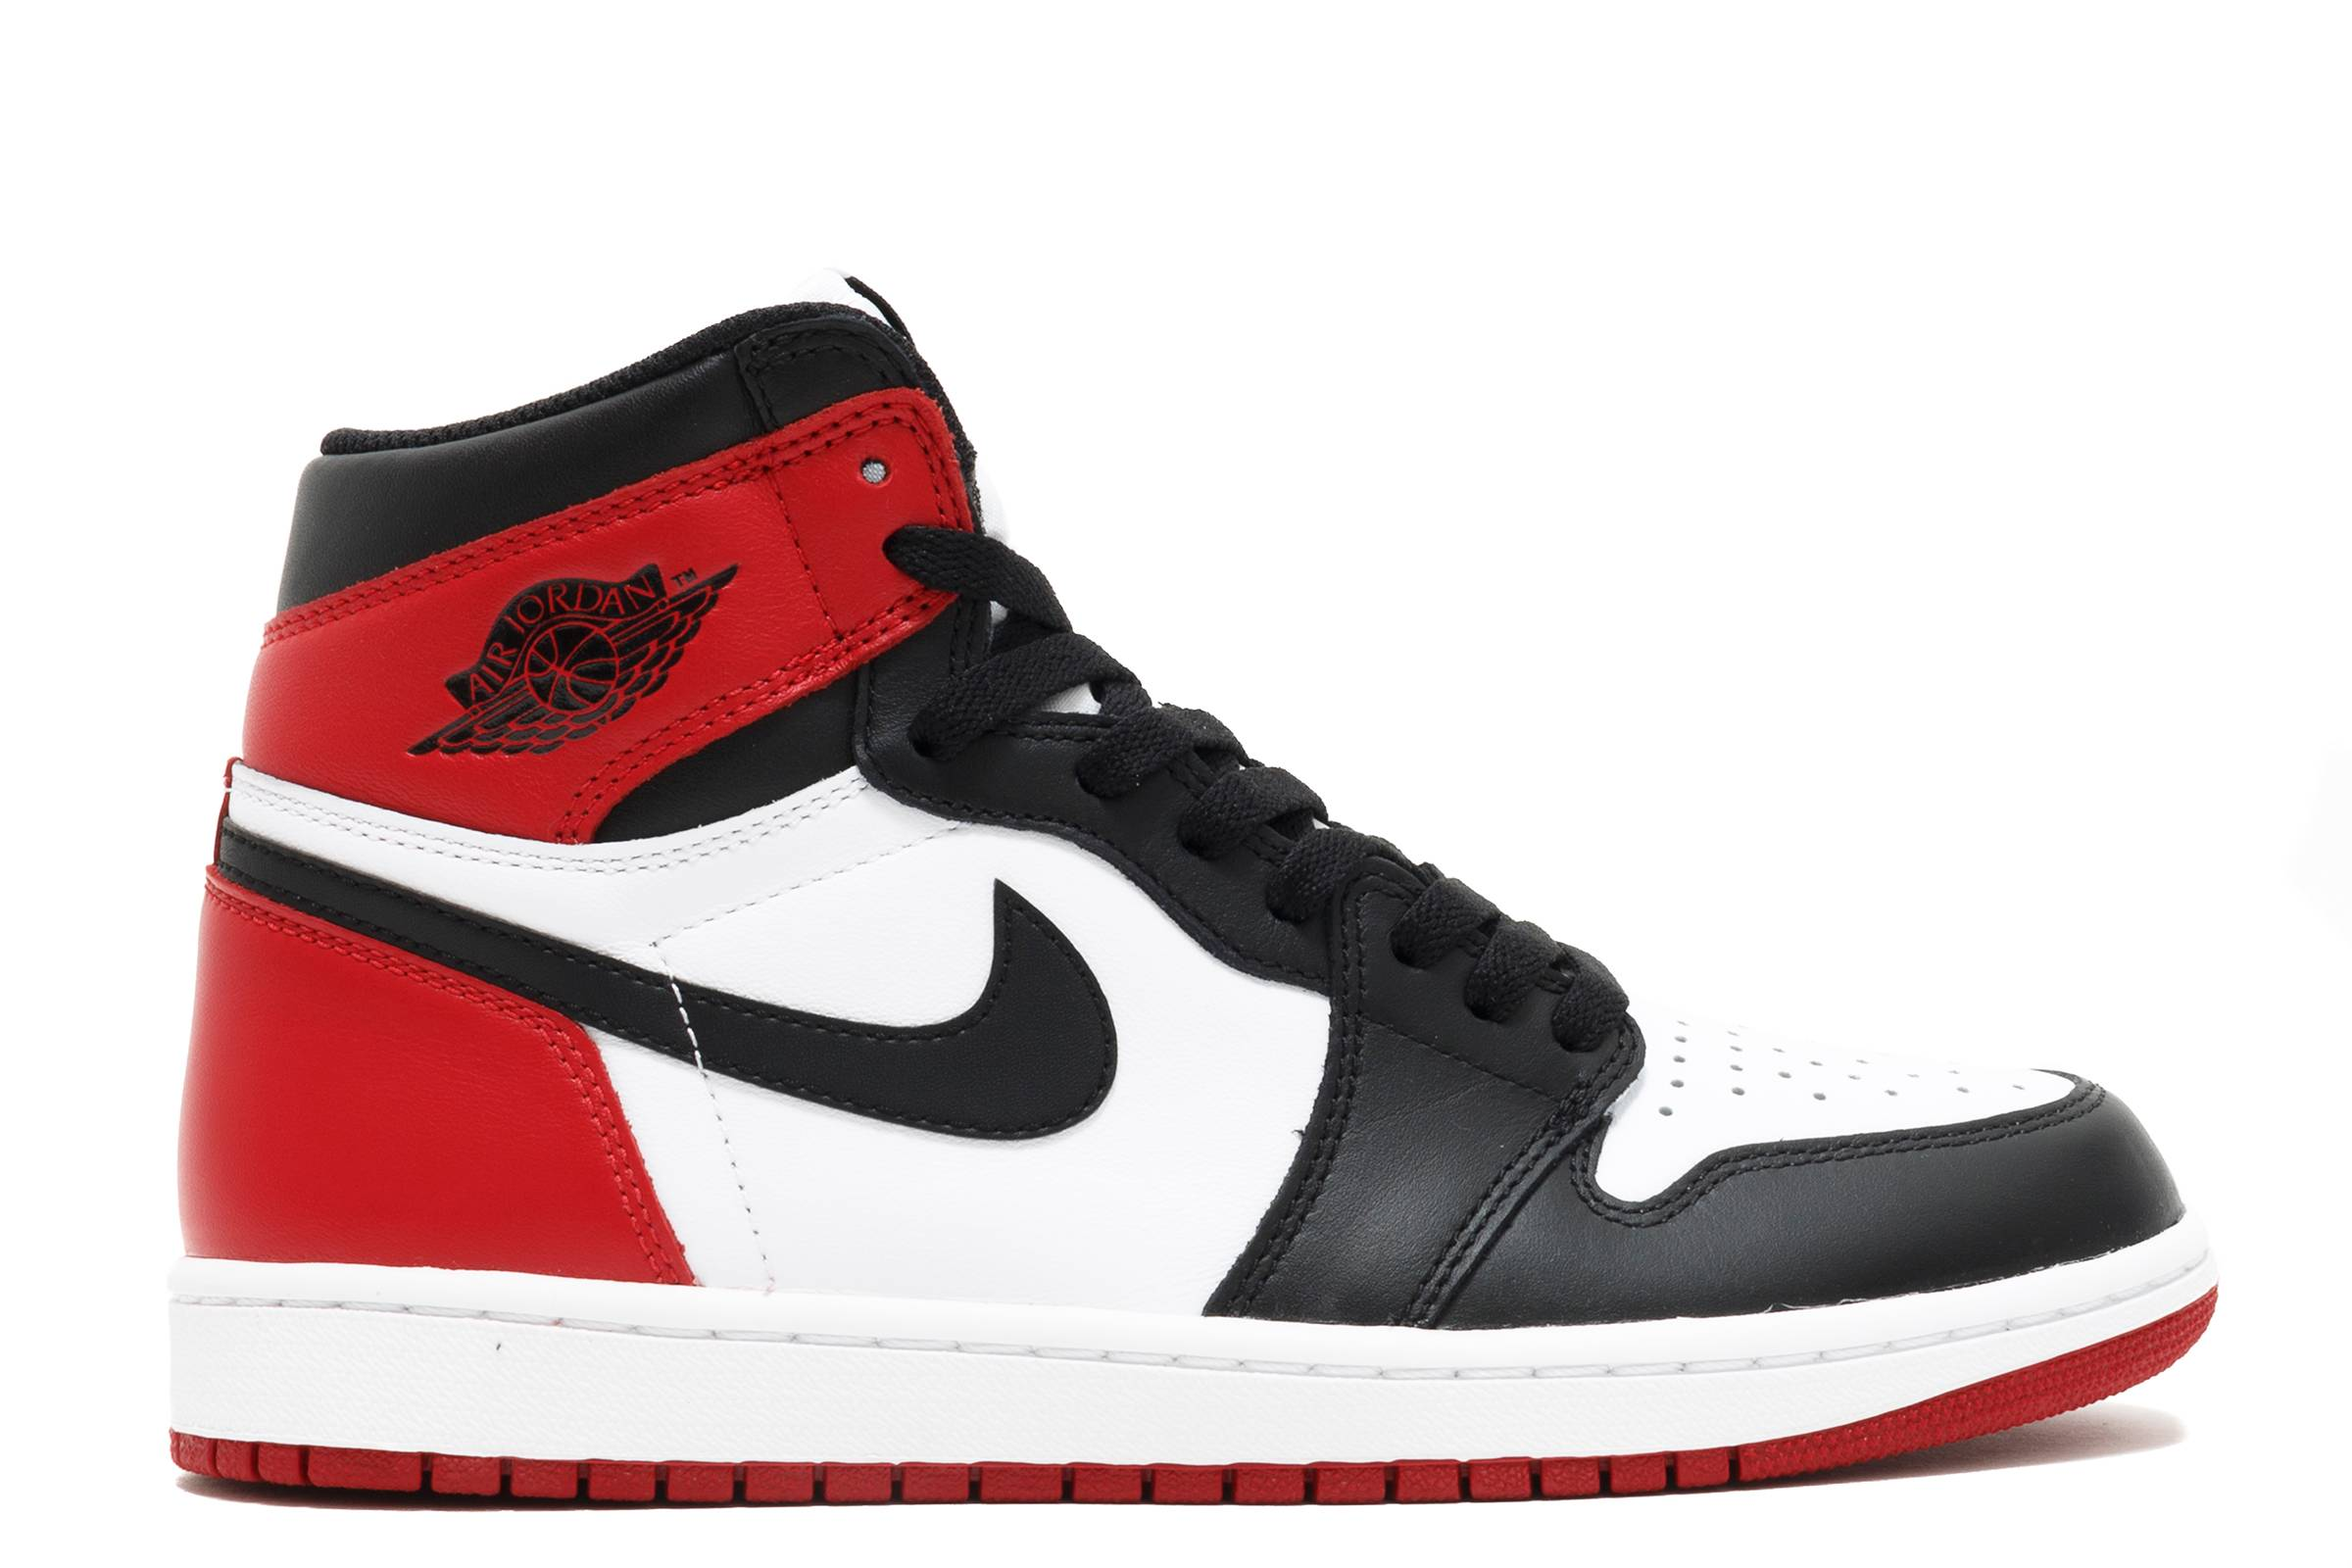 the best attitude 7f1d7 4ede4 Jordan 1 Black Toe